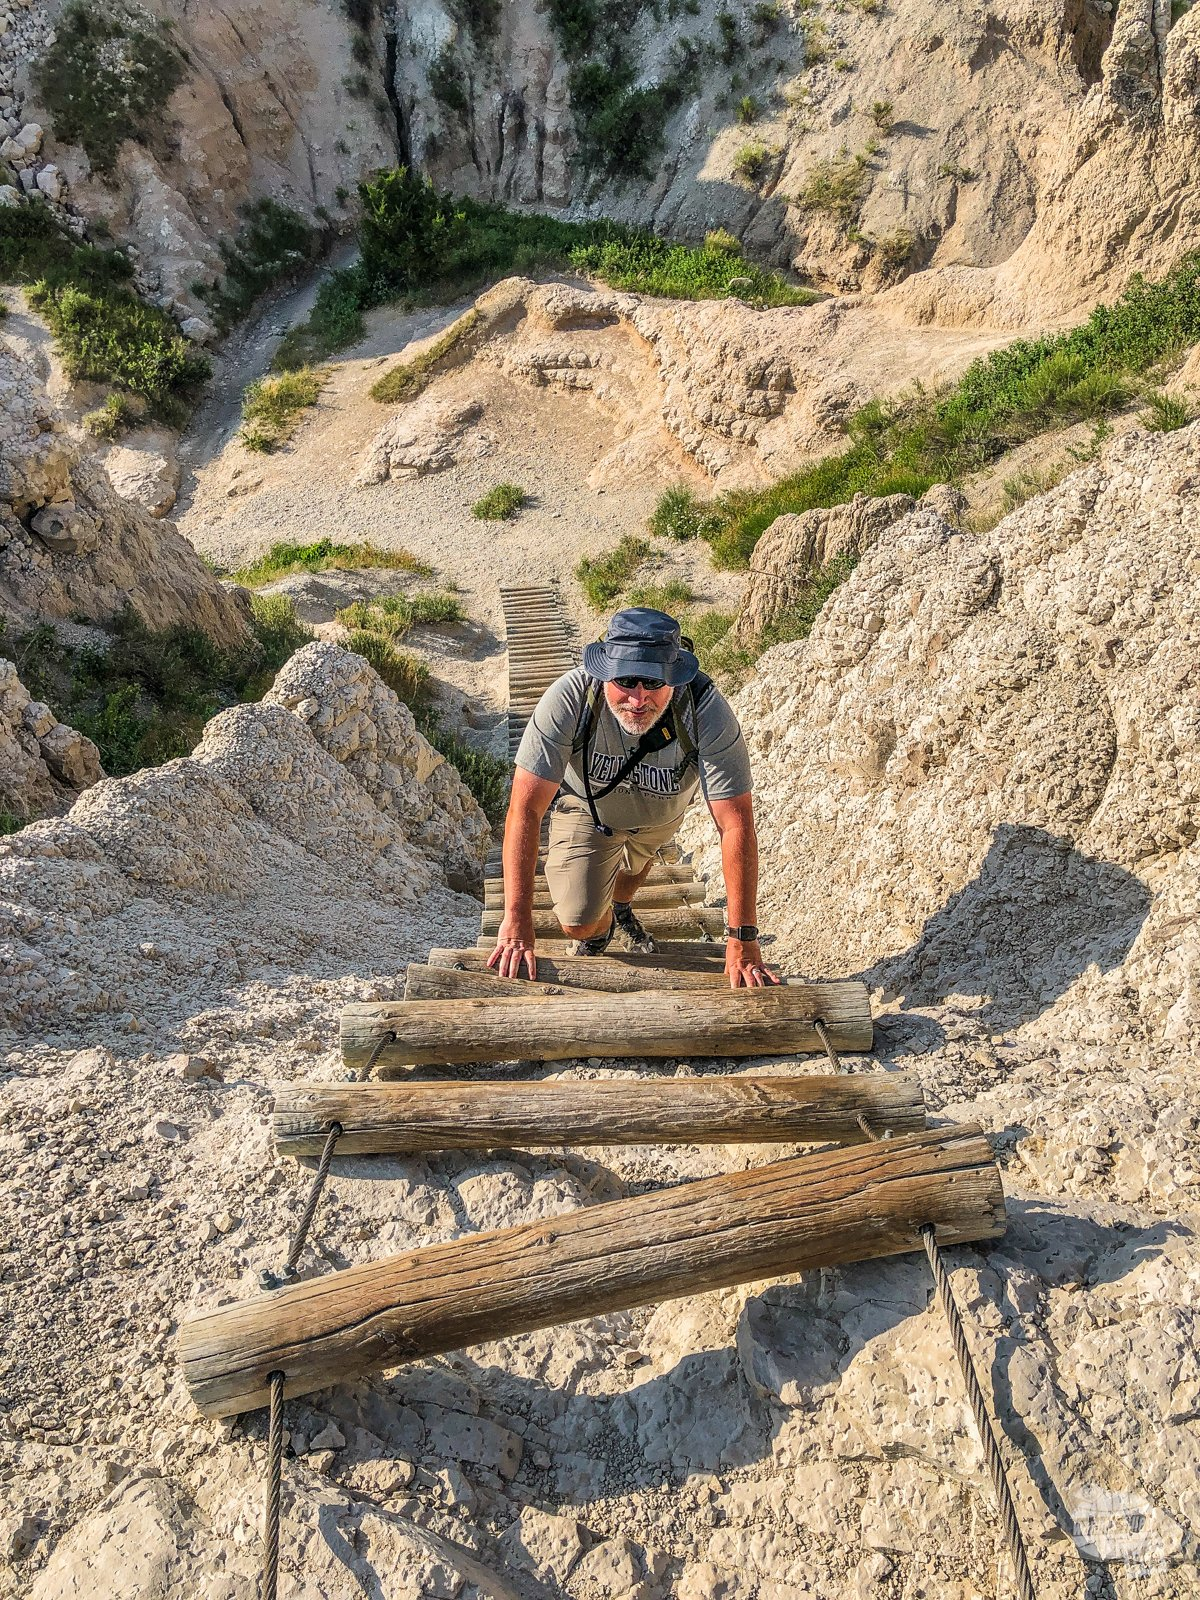 Grant climbing up a ladder made of logs on cable in Badlands National Park.